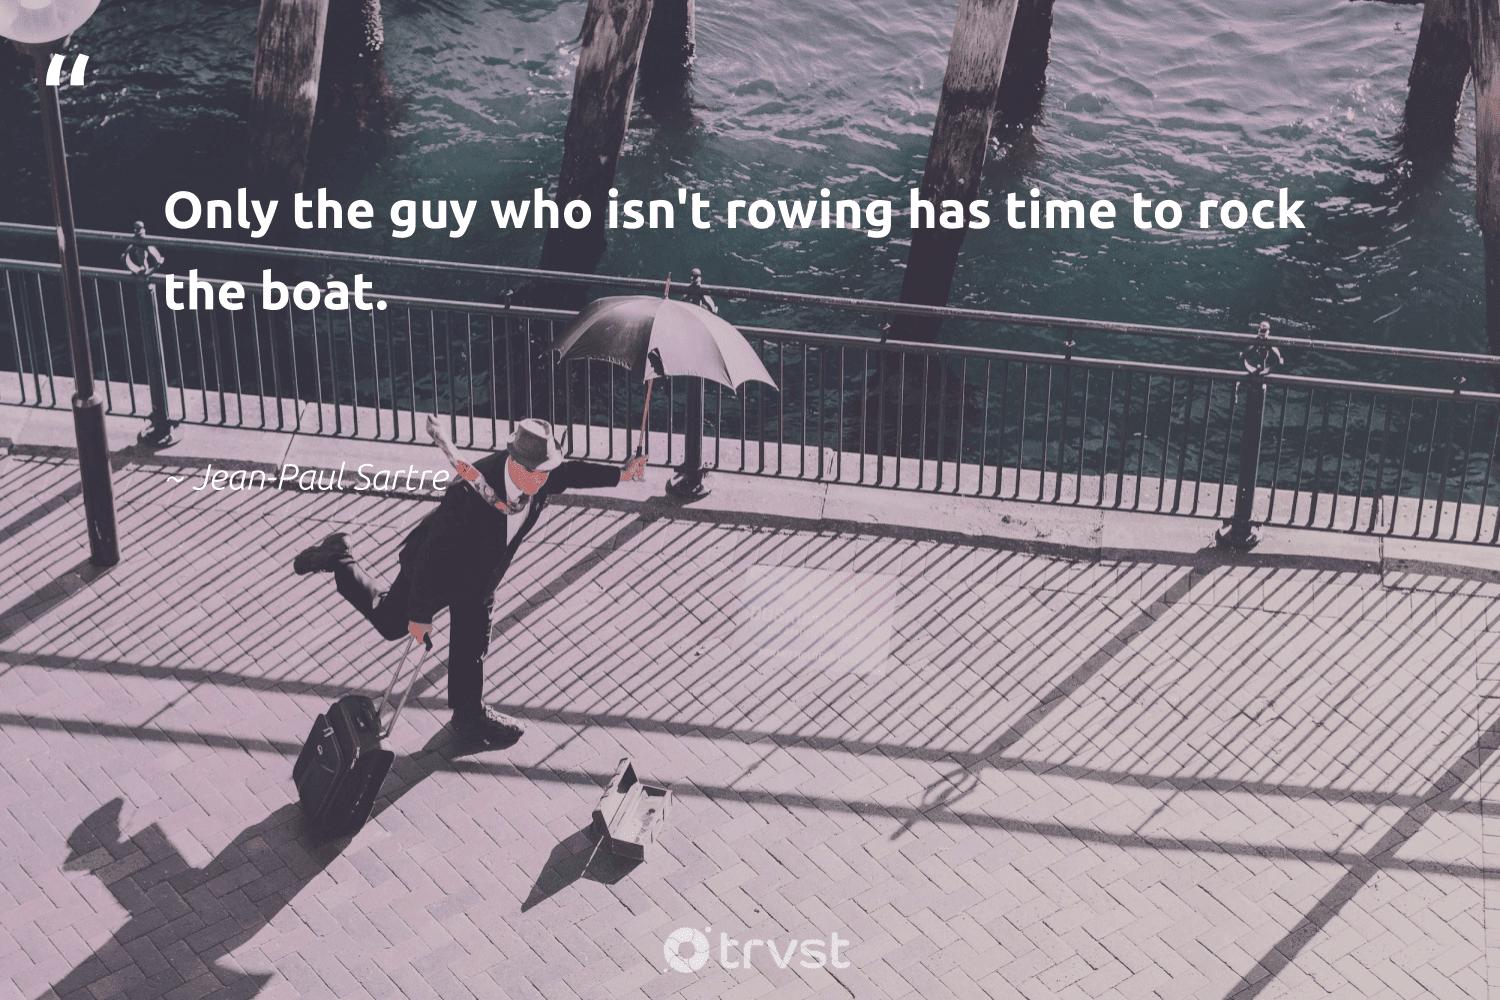 """""""Only the guy who isn't rowing has time to rock the boat.""""  - Jean-Paul Sartre #trvst #quotes #futureofwork #collectiveaction #begreat #thinkgreen #softskills #takeaction #nevergiveup #dogood #dosomething #beinspired"""